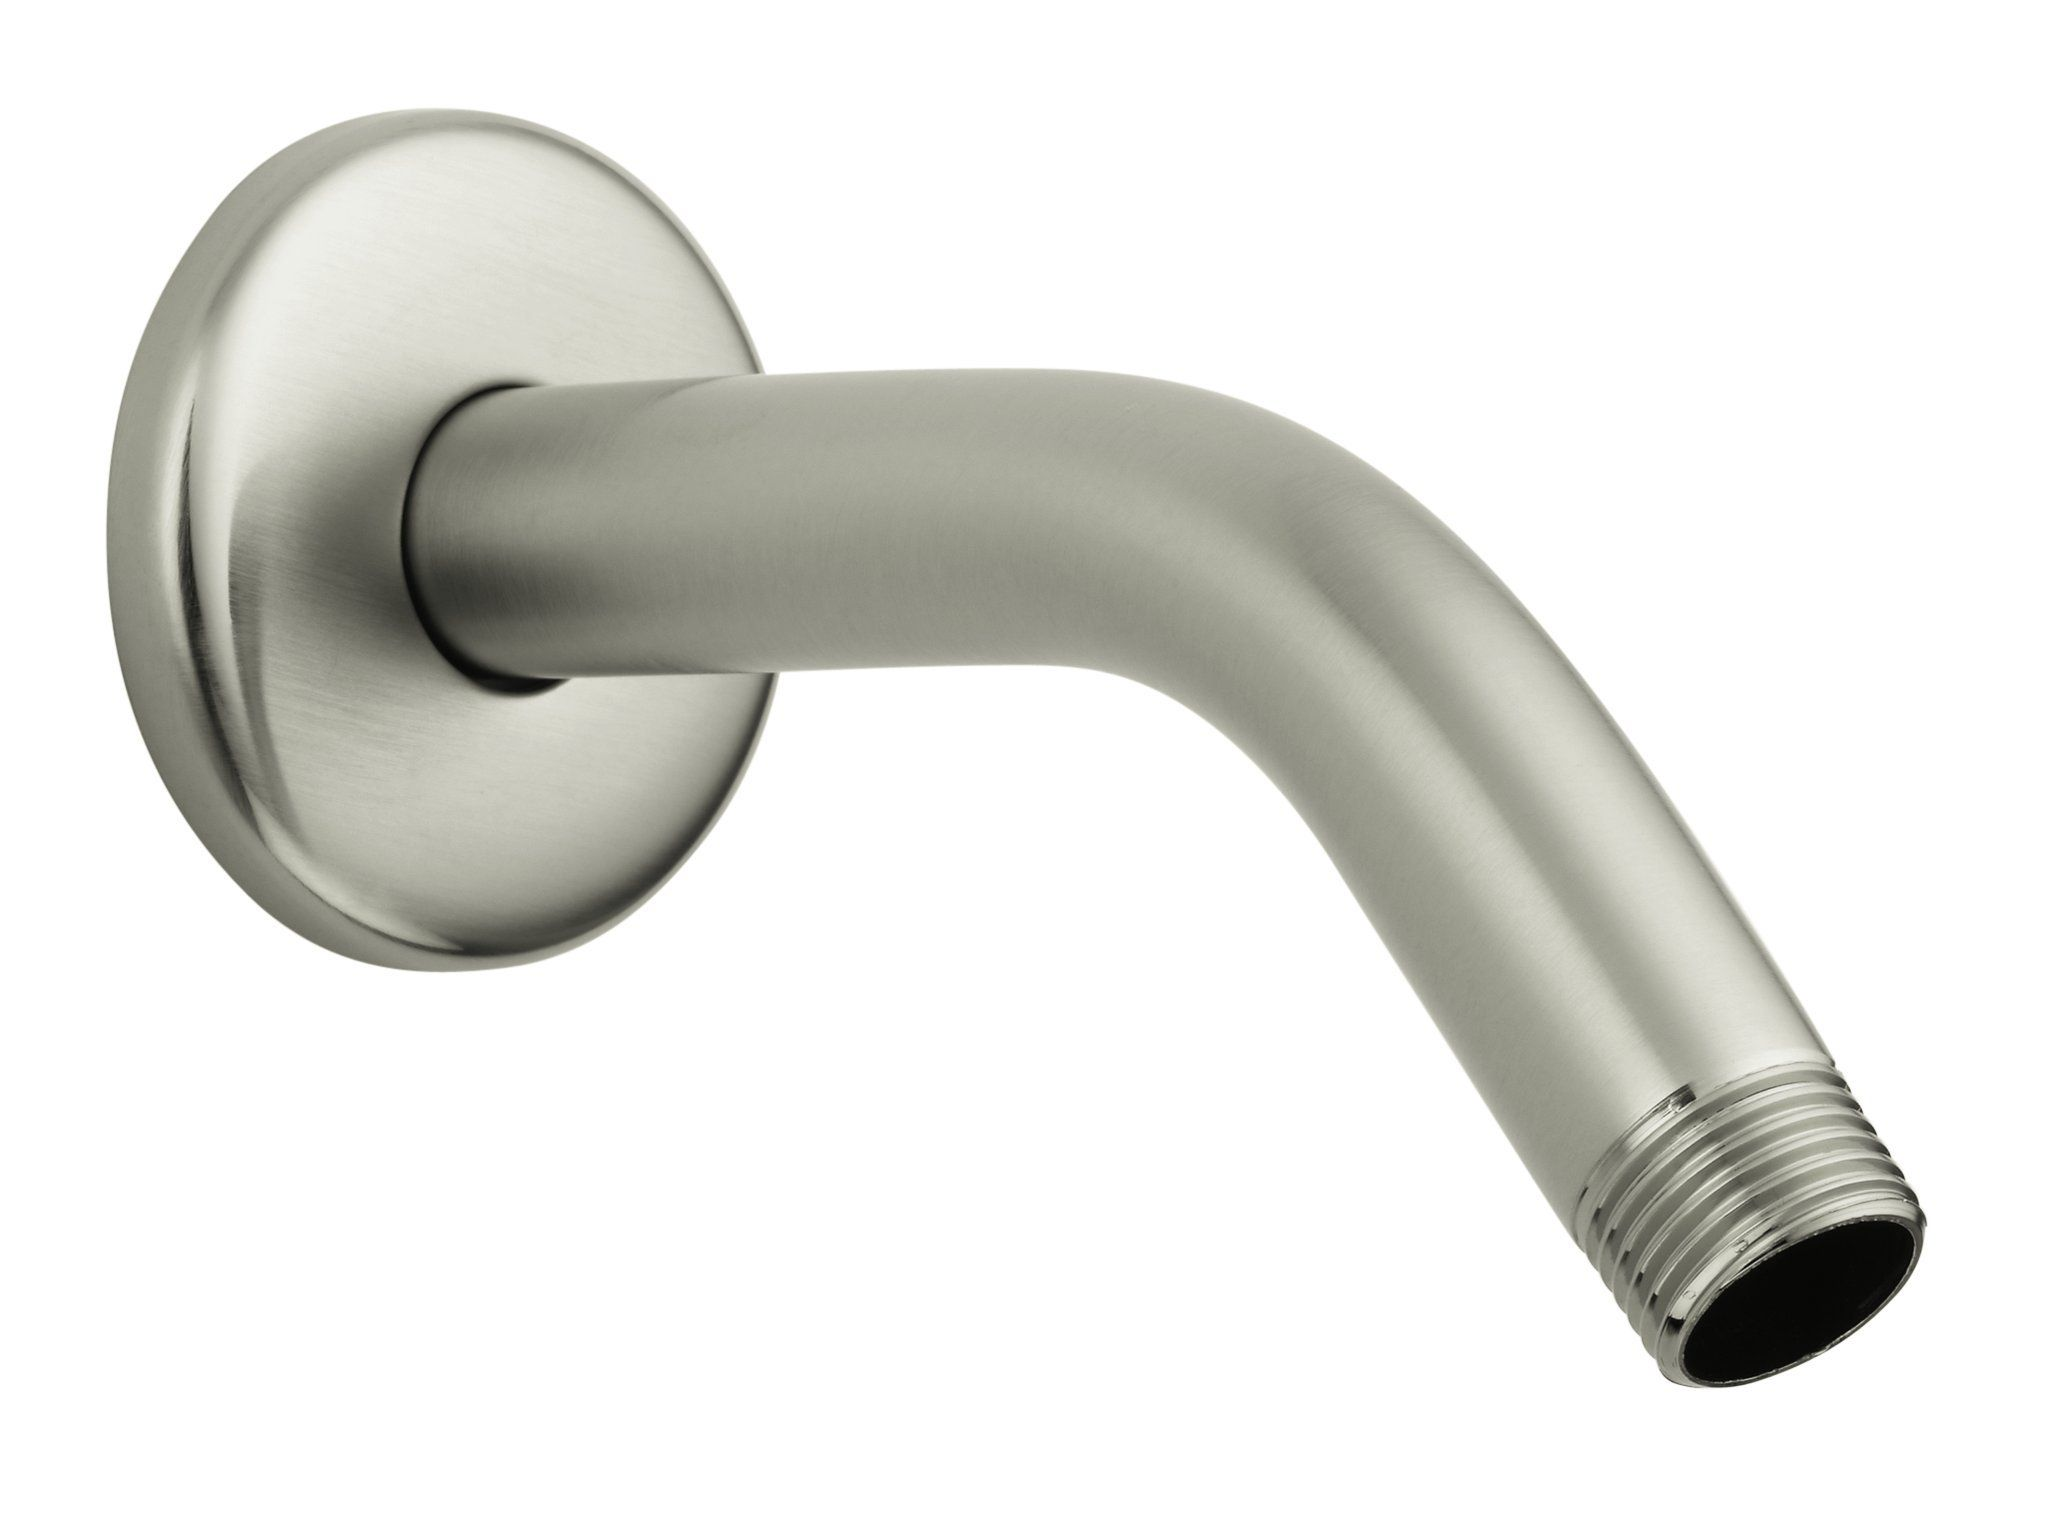 Hansgrohe 27411823 Standard Shower Arm and Flange, 6-Inch, Brushed ...